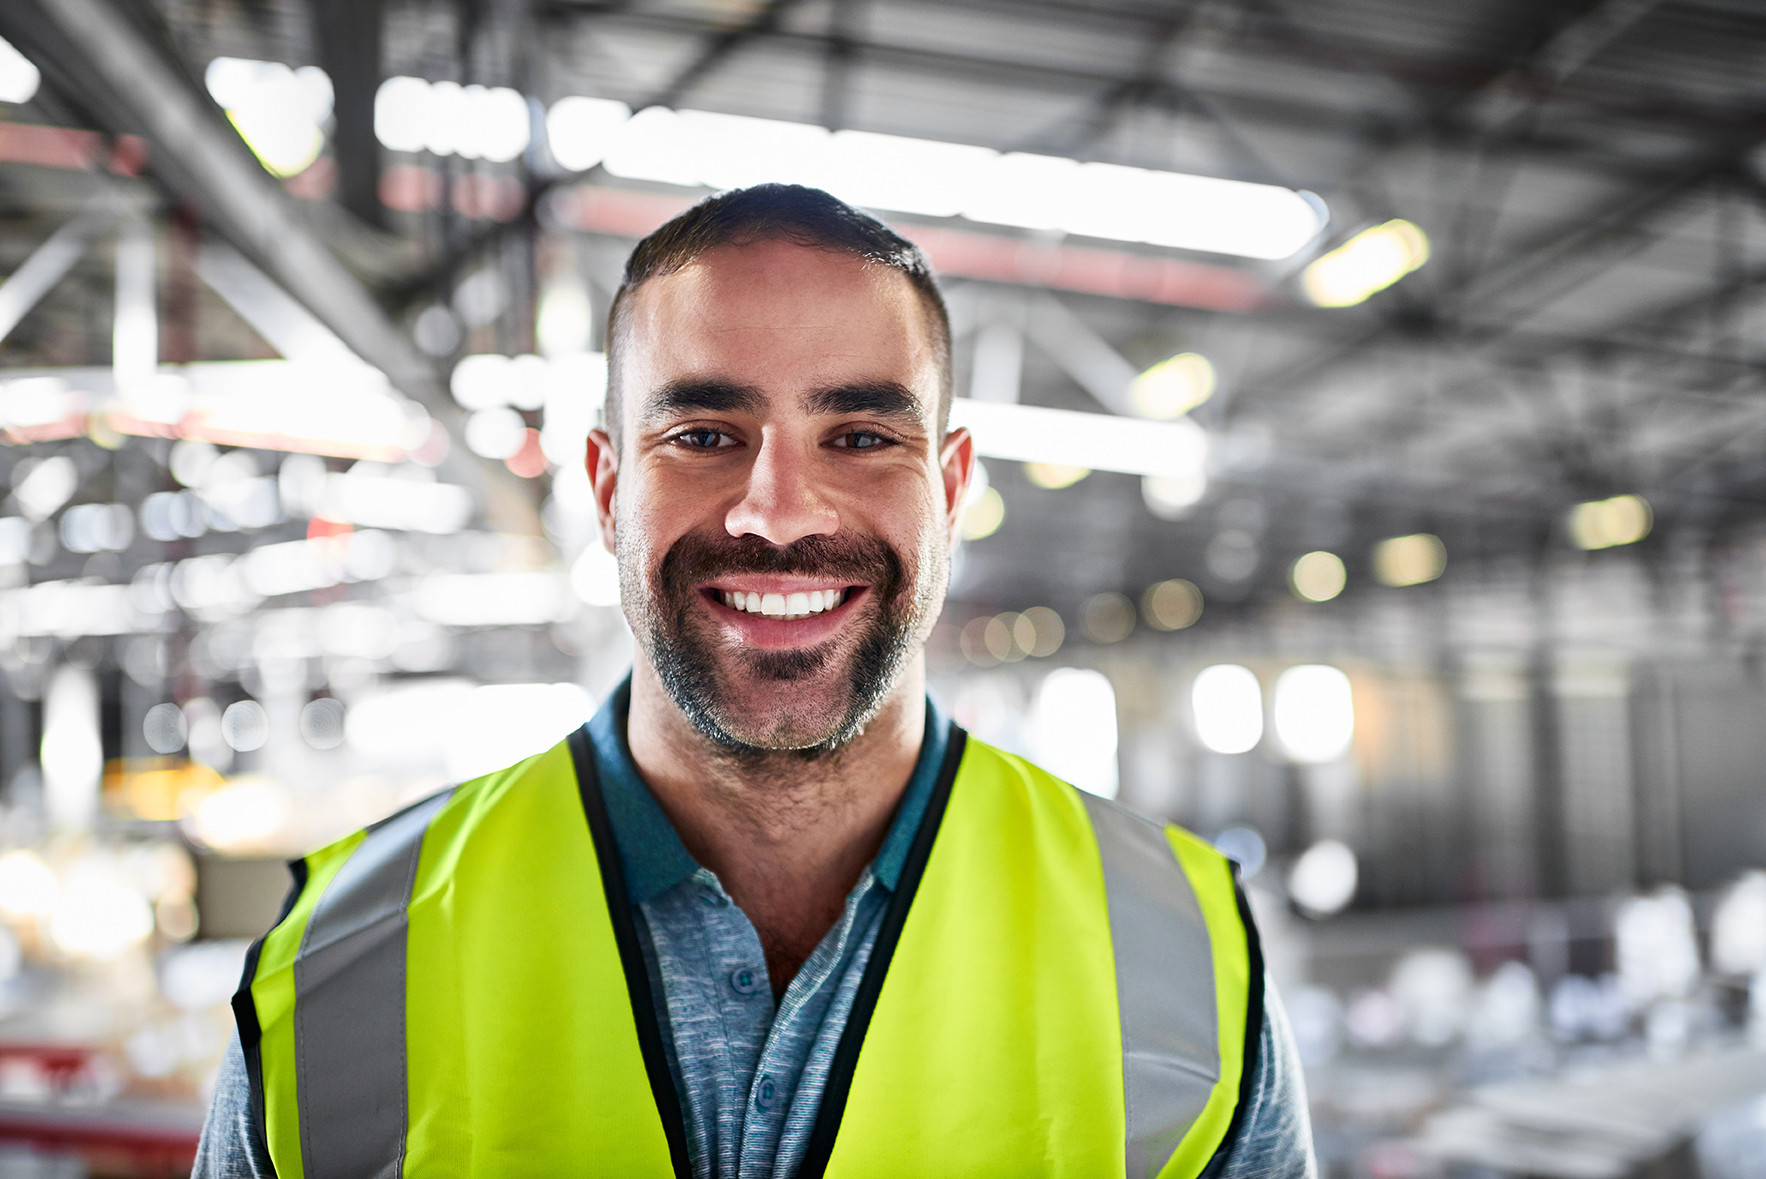 Portrait of a warehouse worker standing in a large warehouse